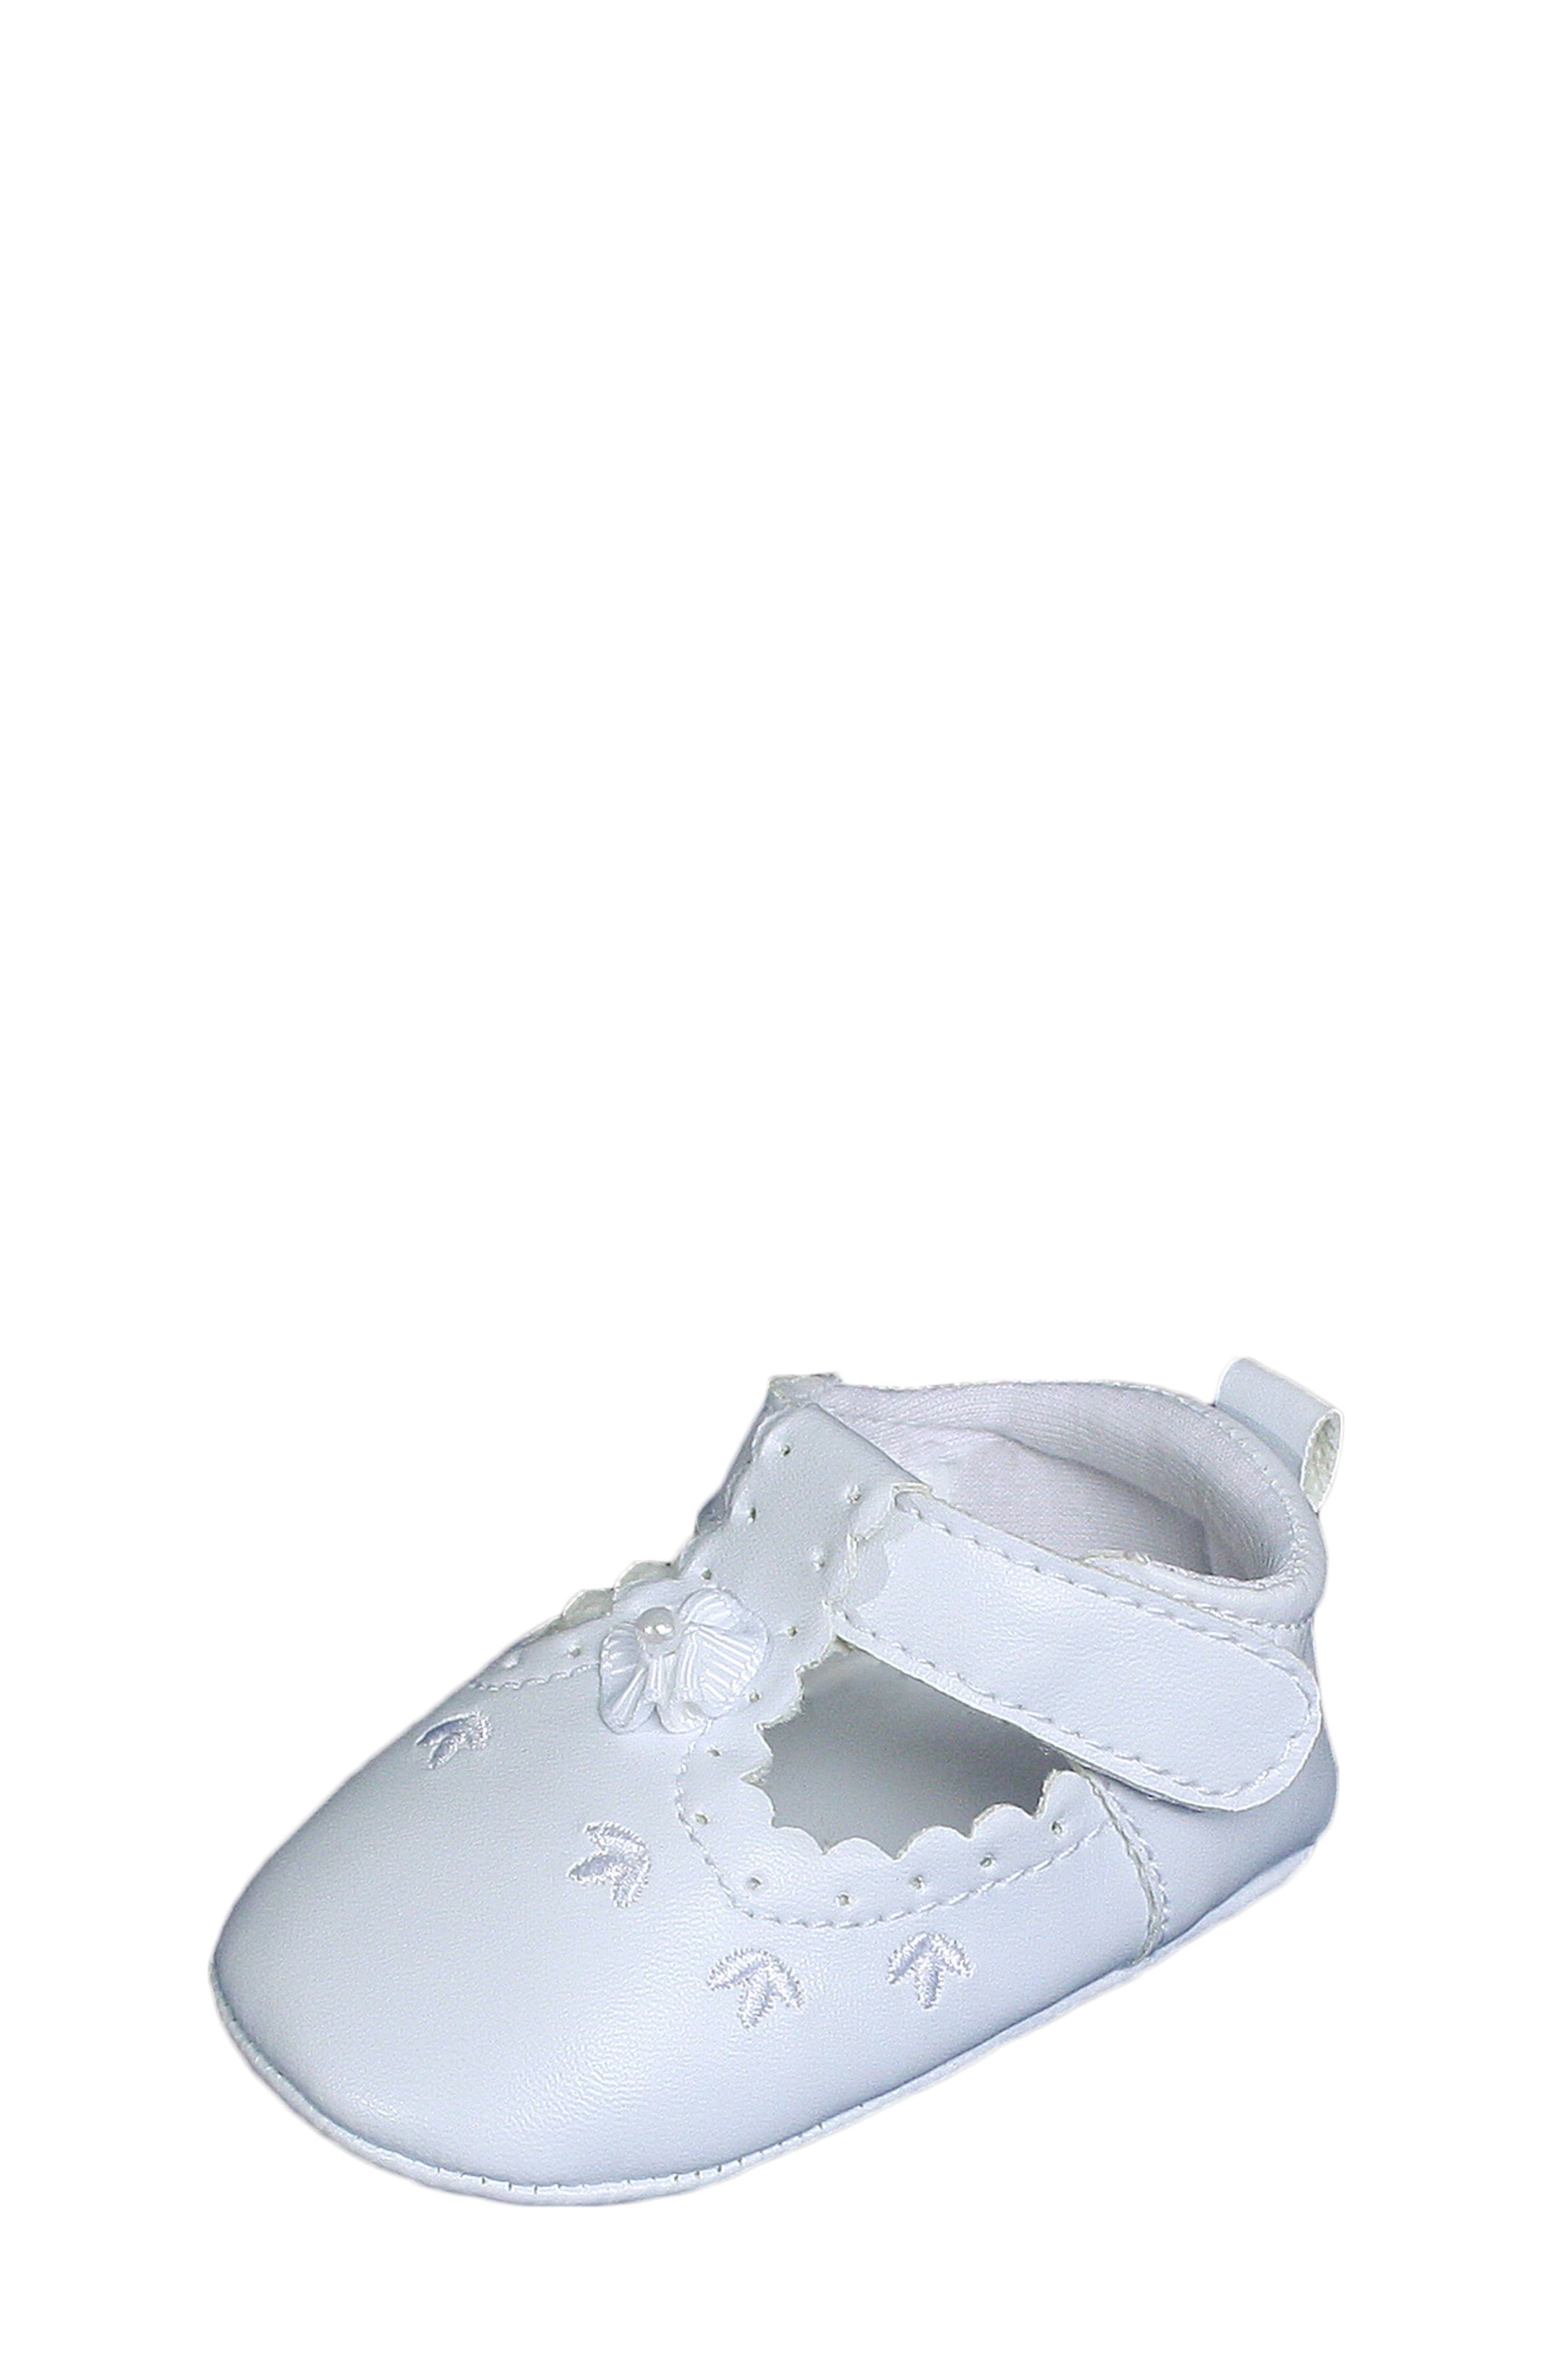 Mary Jane Crib Shoe,                             Alternate thumbnail 5, color,                             White